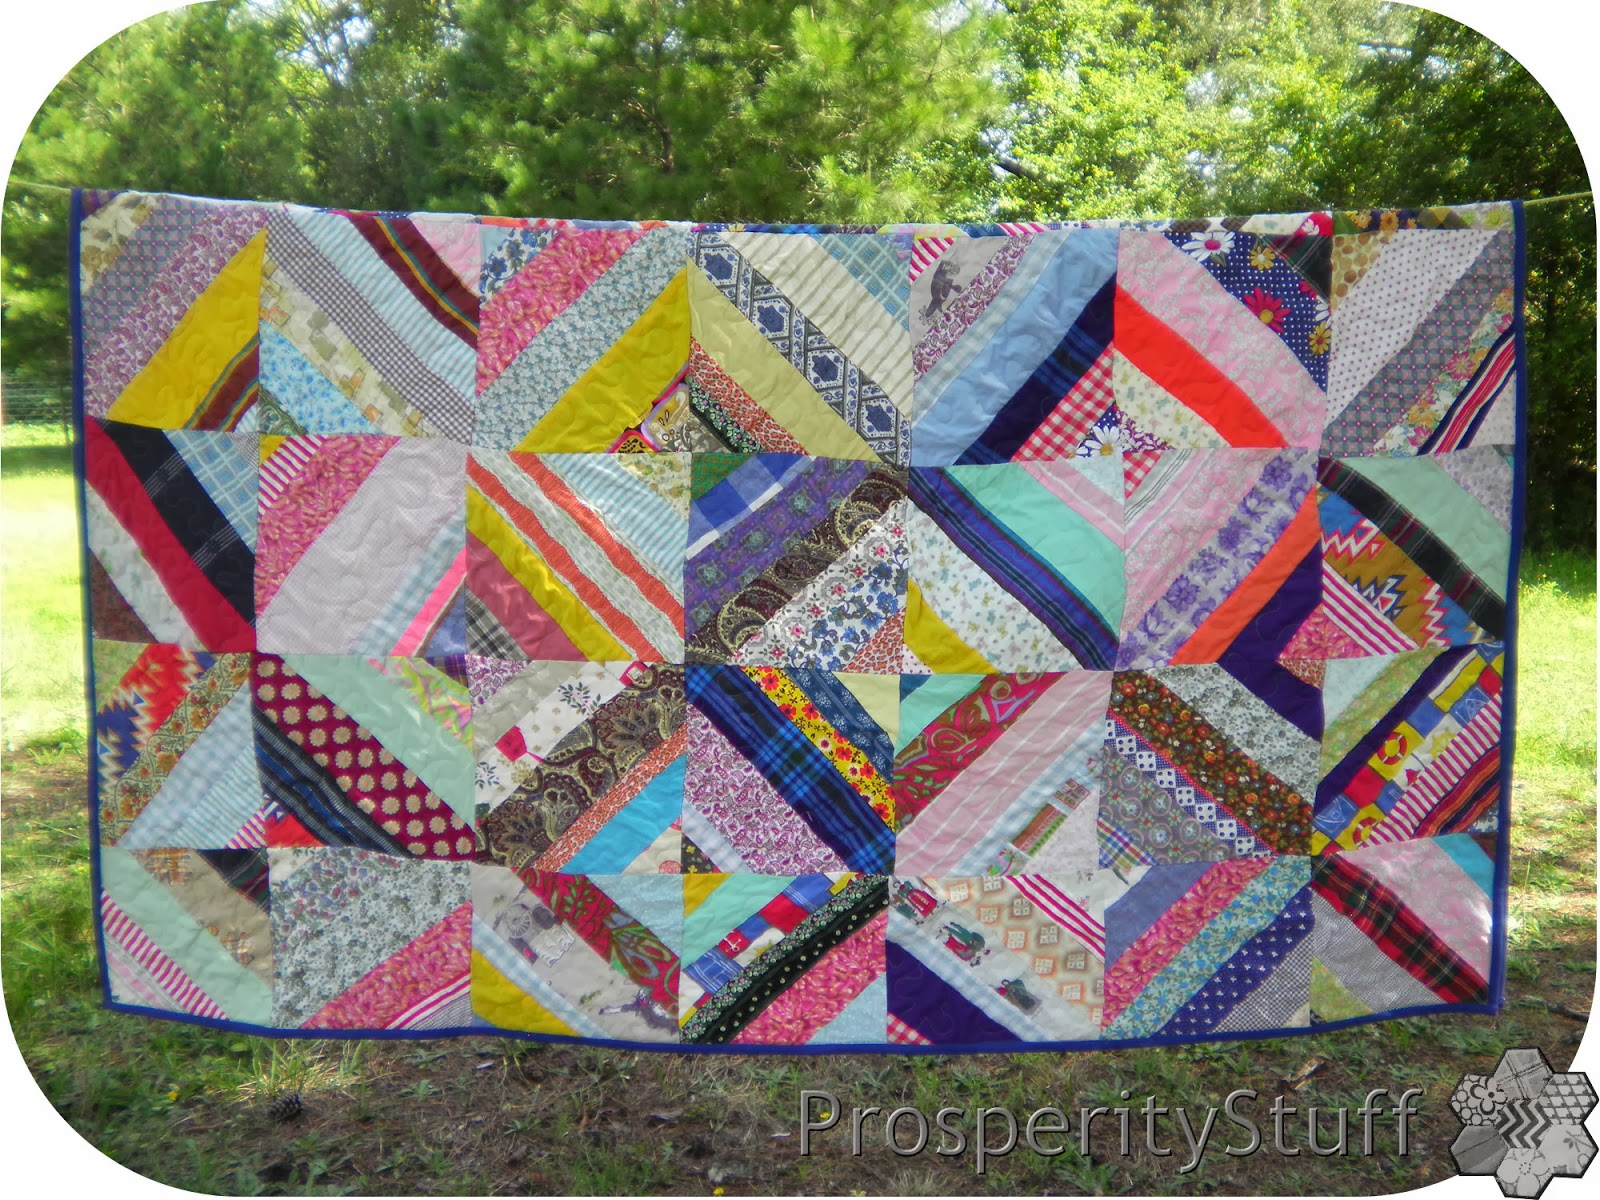 Finished Vintage Quilt on the Clothesline